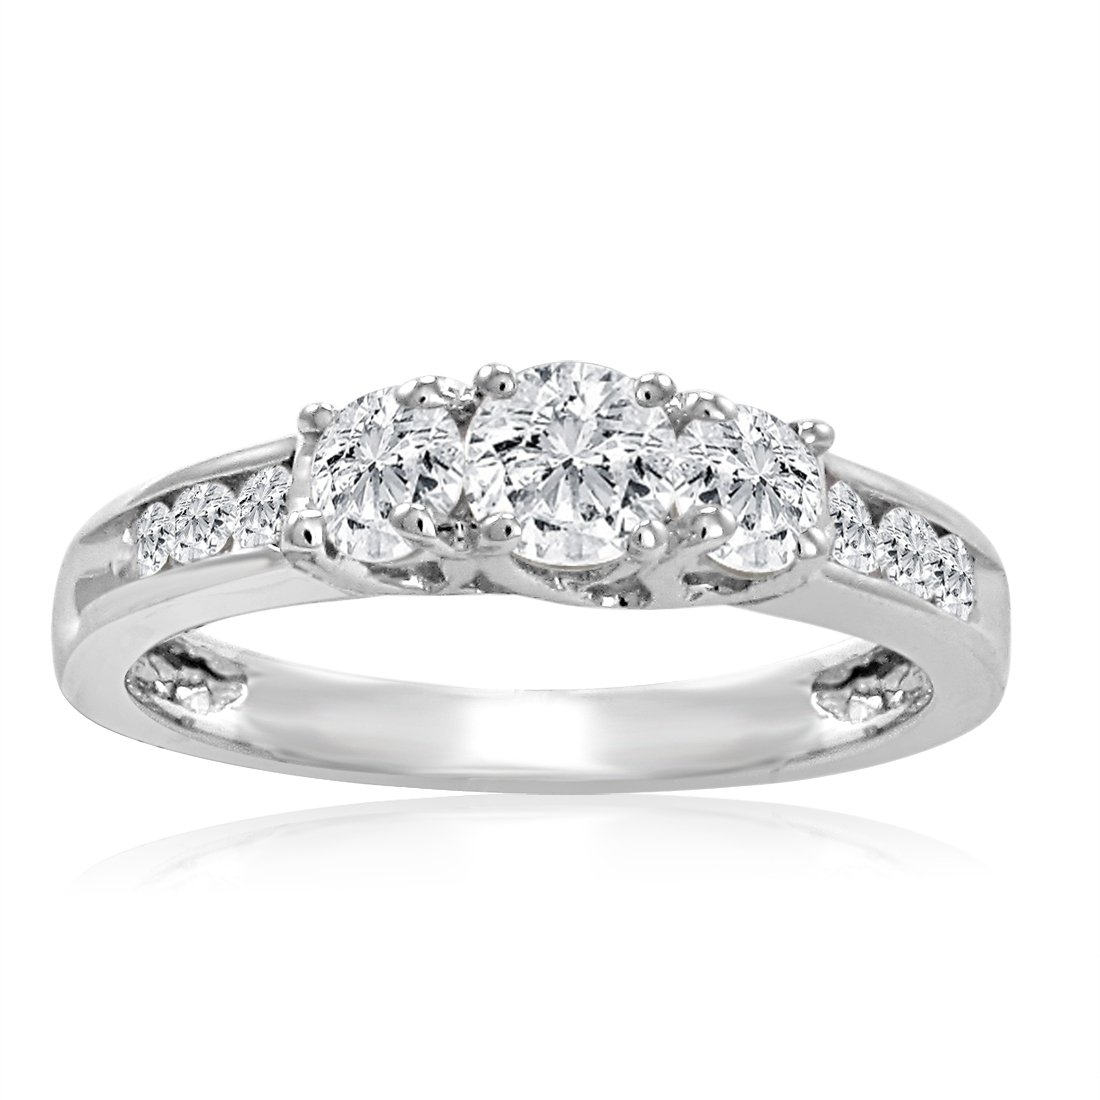 IGI Certified 10K White Gold Three Stone Plus Diamond Anniversary Ring 1ct total weight (available sizes 5-8) sz7